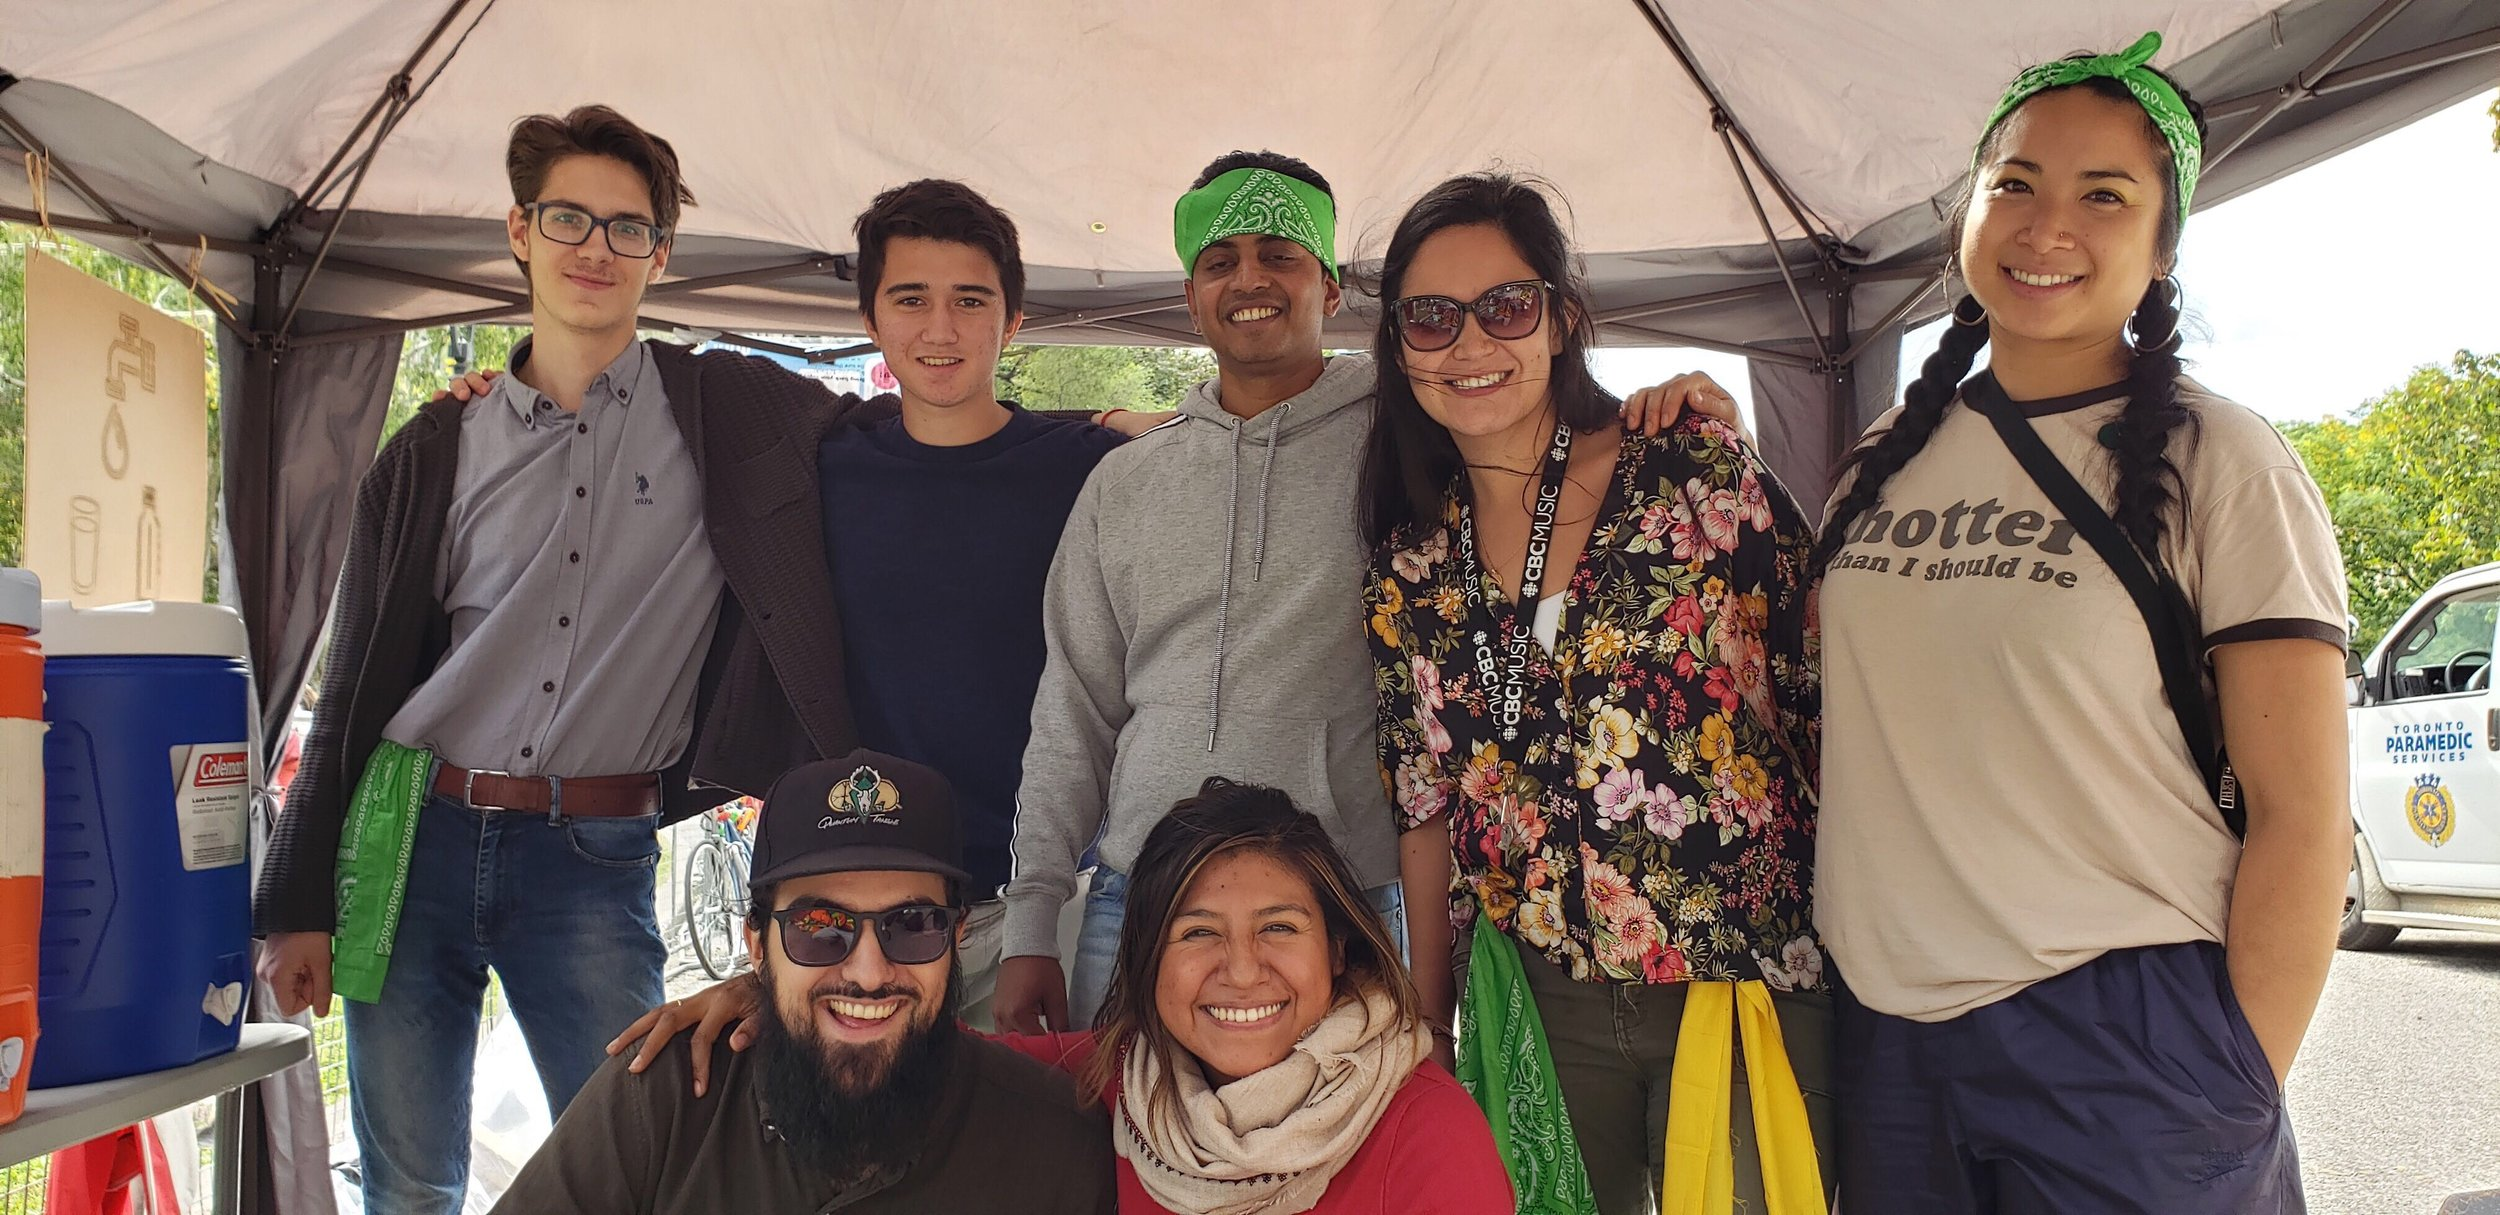 Top row (left to right): Daniel Iaskelevich, Gareth Jones, Vinod Sankarshanan, Suanny Aranguren, Rachel Wang. Bottom row (left to right): James Arruda and Erika Reyes. Green Team members missing from photo: Samaneh Goodarzirad, Annie Yang, Chang hoon Lee and Isha Varma.